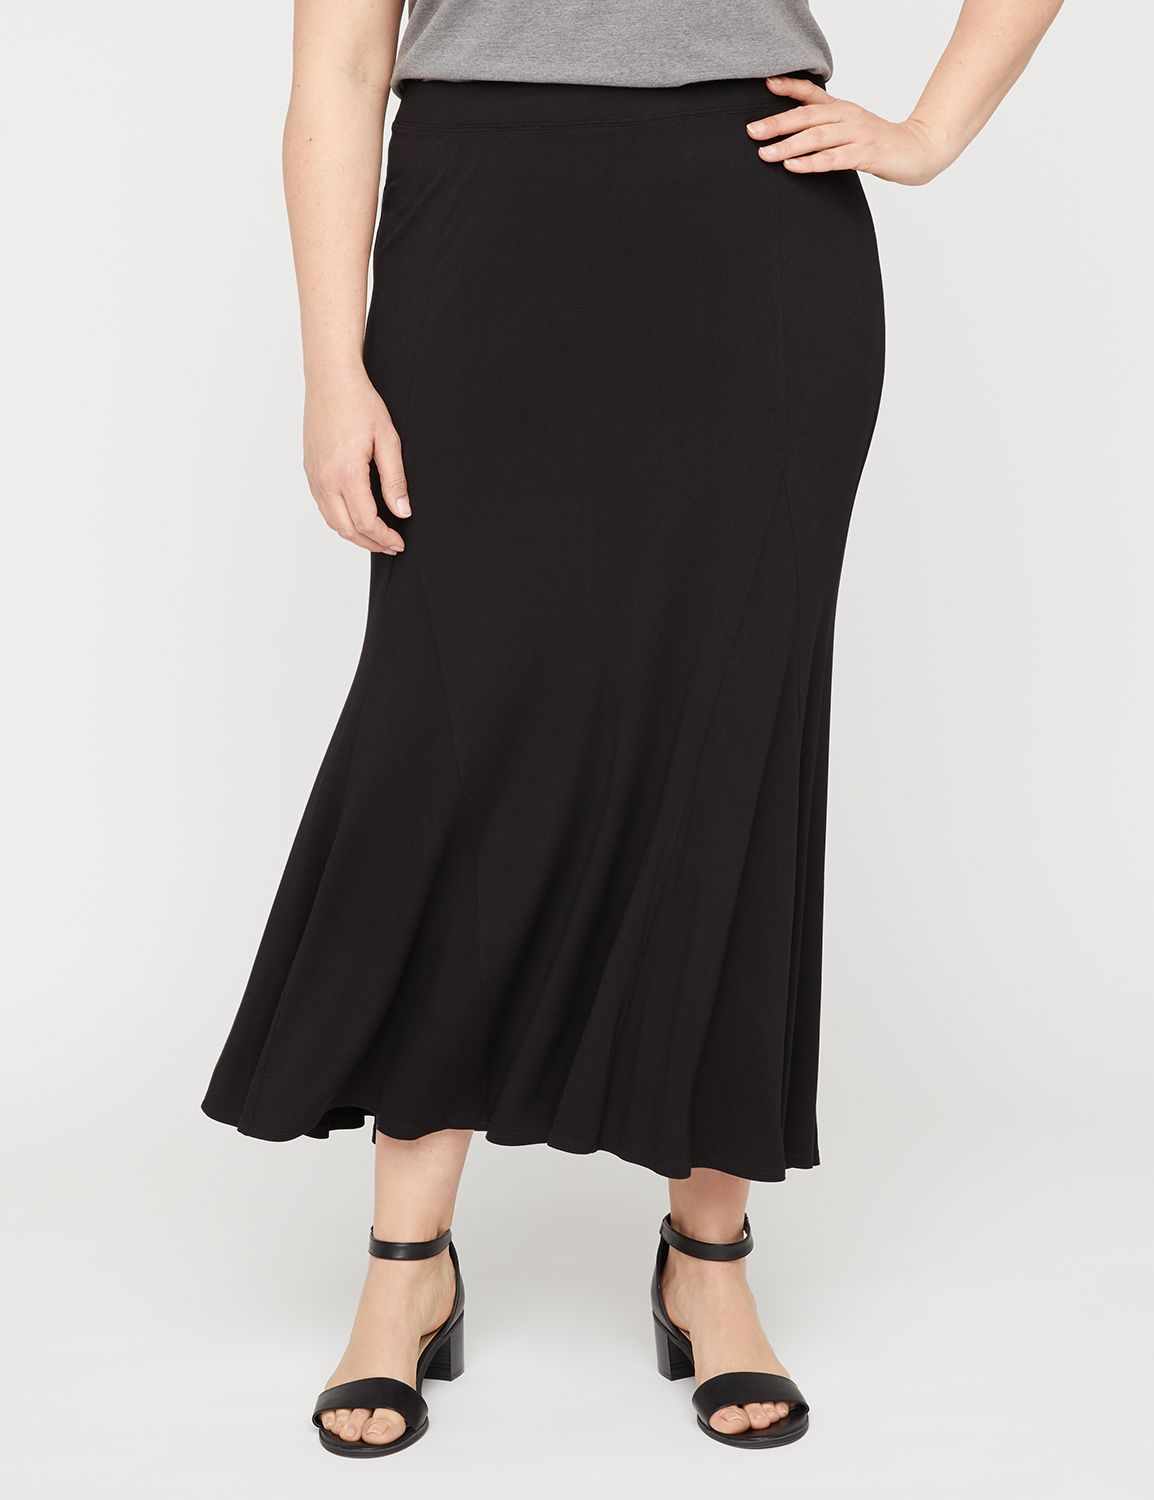 1930s Style Skirts : Midi Skirts, Tea Length, Pleated AnyWear Maxi Skirt $54.95 AT vintagedancer.com